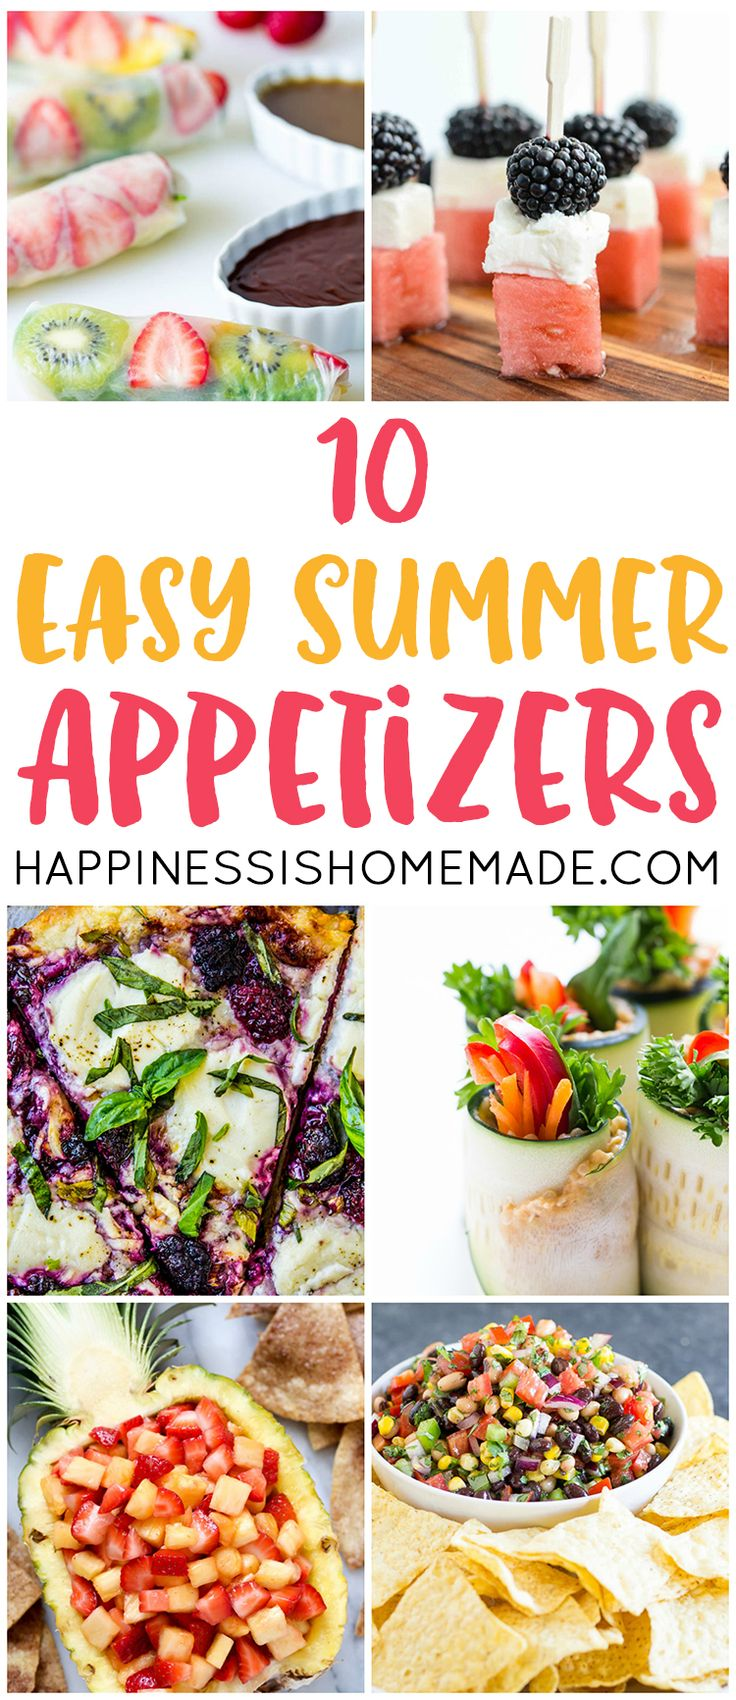 These easy summer appetizer recipes are perfect for your next party! Wow the crowd with these delicious and simple to prepare summer dishes!